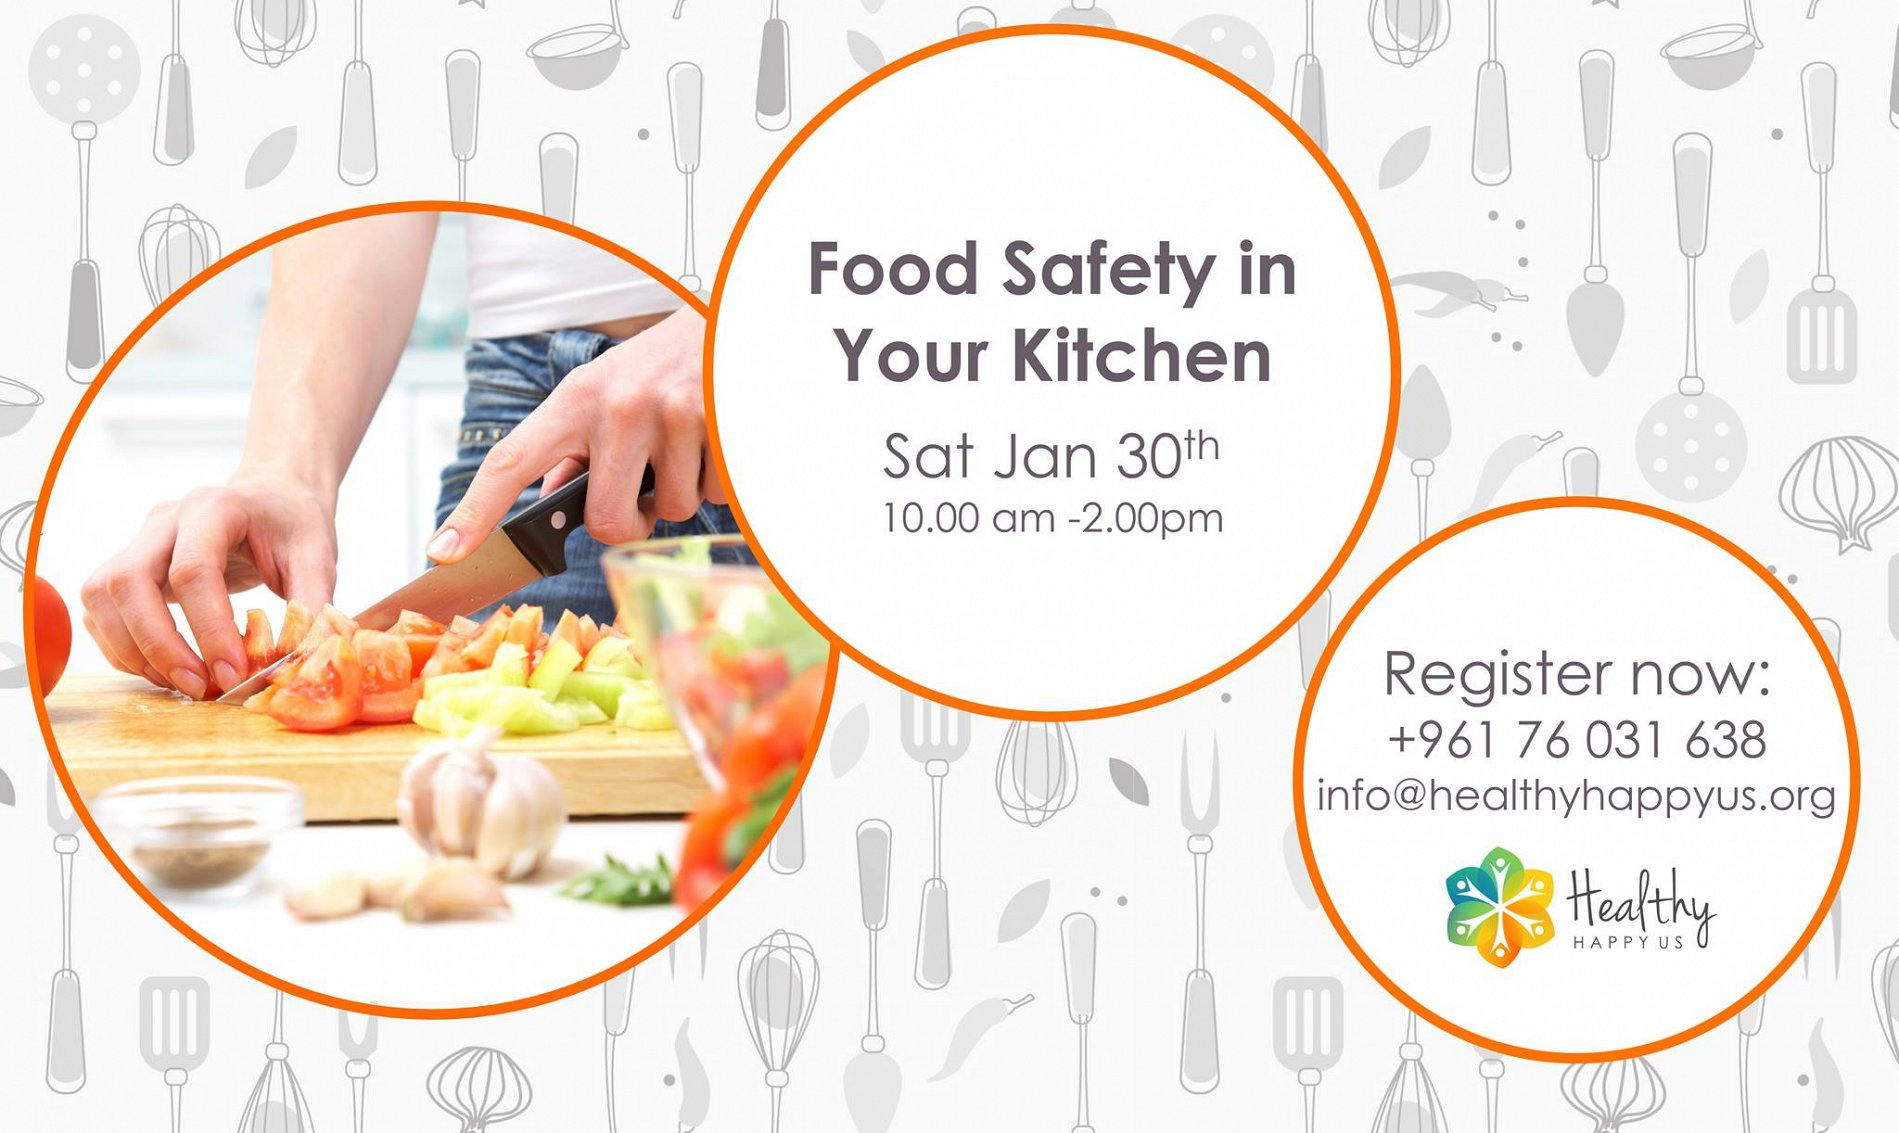 Food Safety in Your Kitchen Workshop « Lebtivity